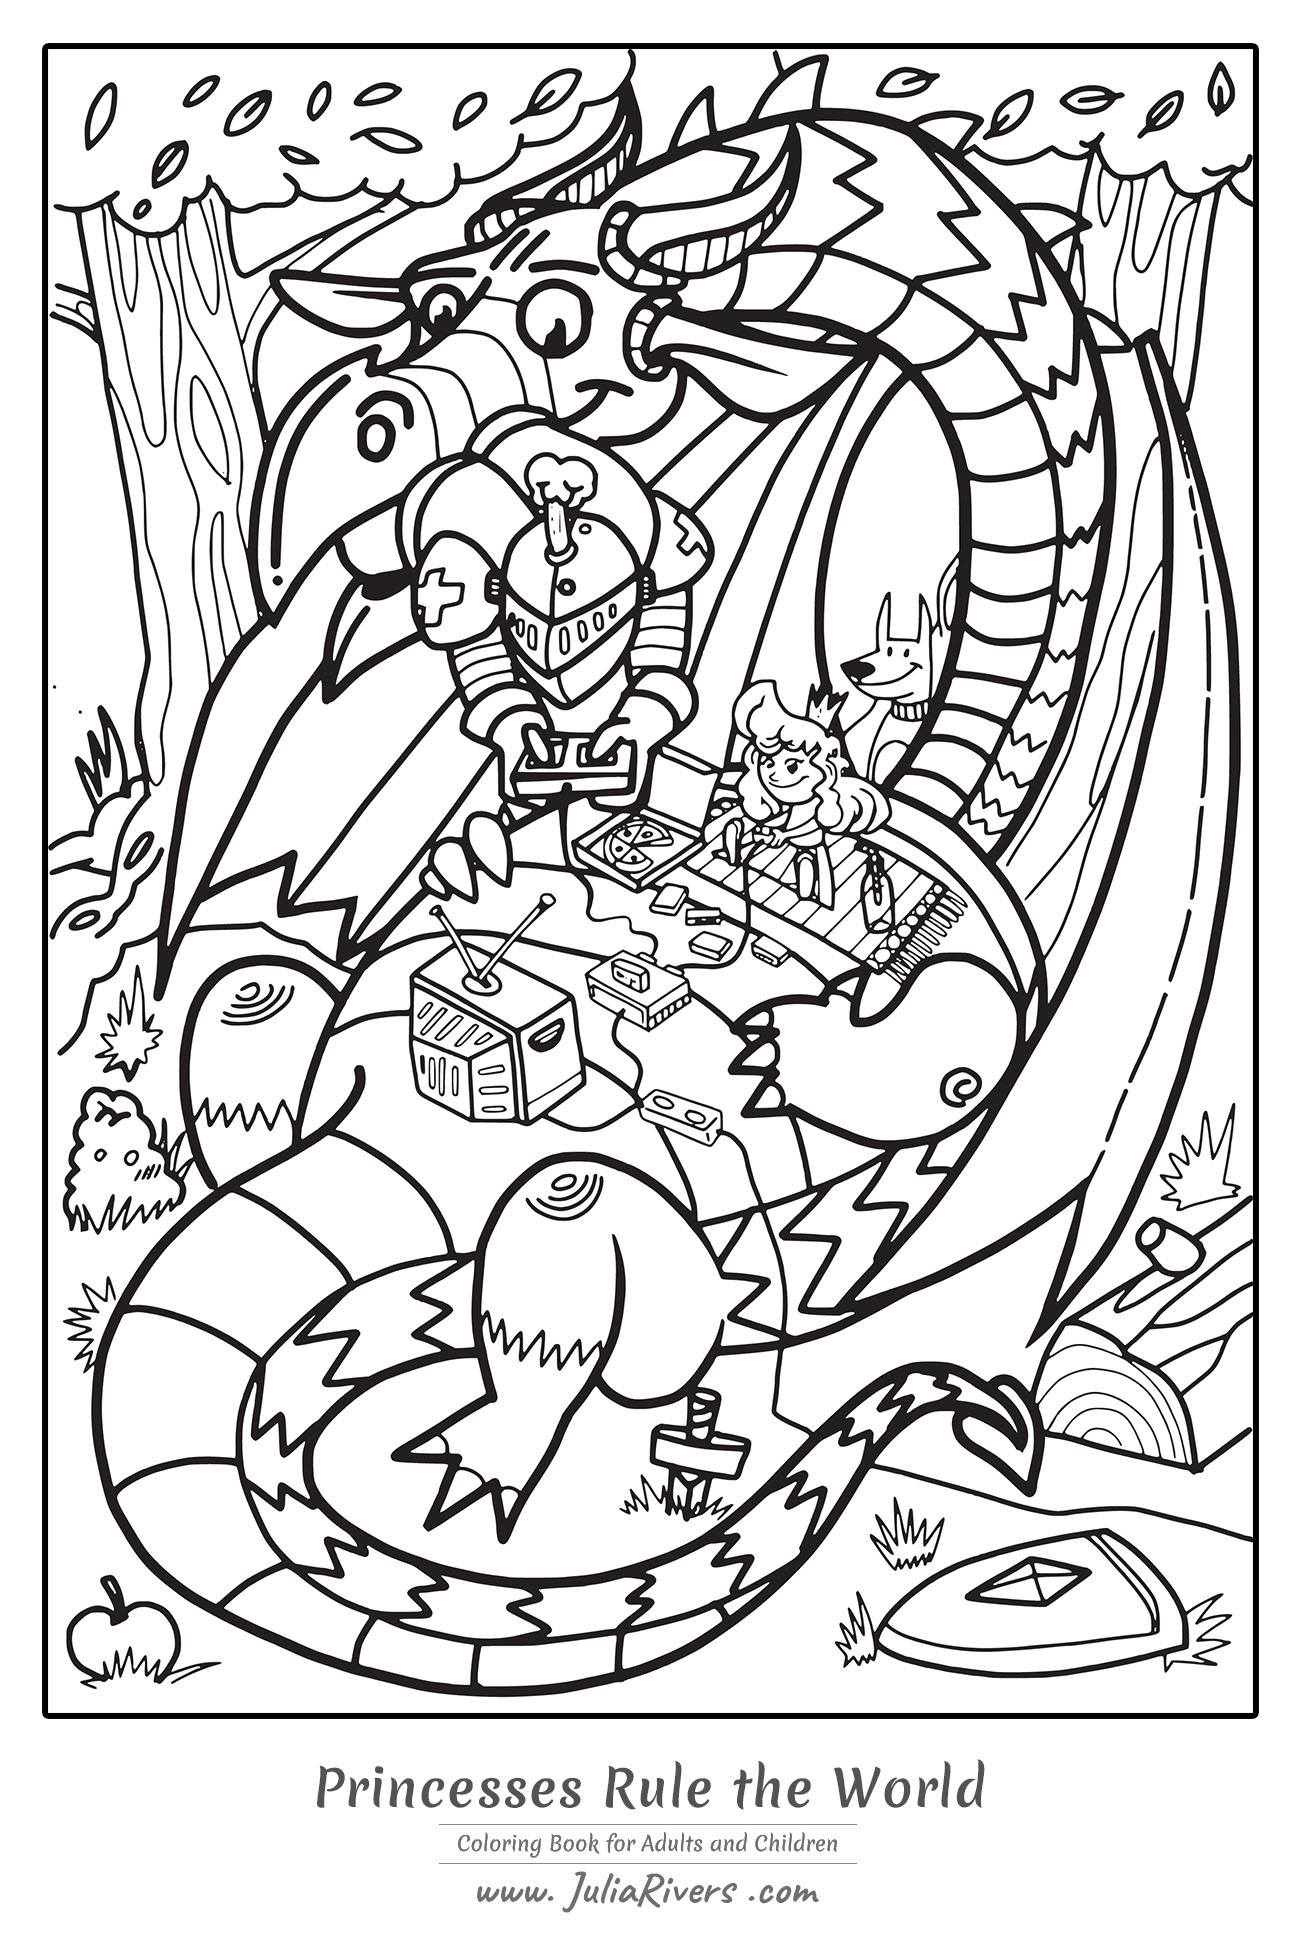 'Princesses Rule the World' : Very original coloring page with a Princess and a Knight playing video games on a friendly dragon